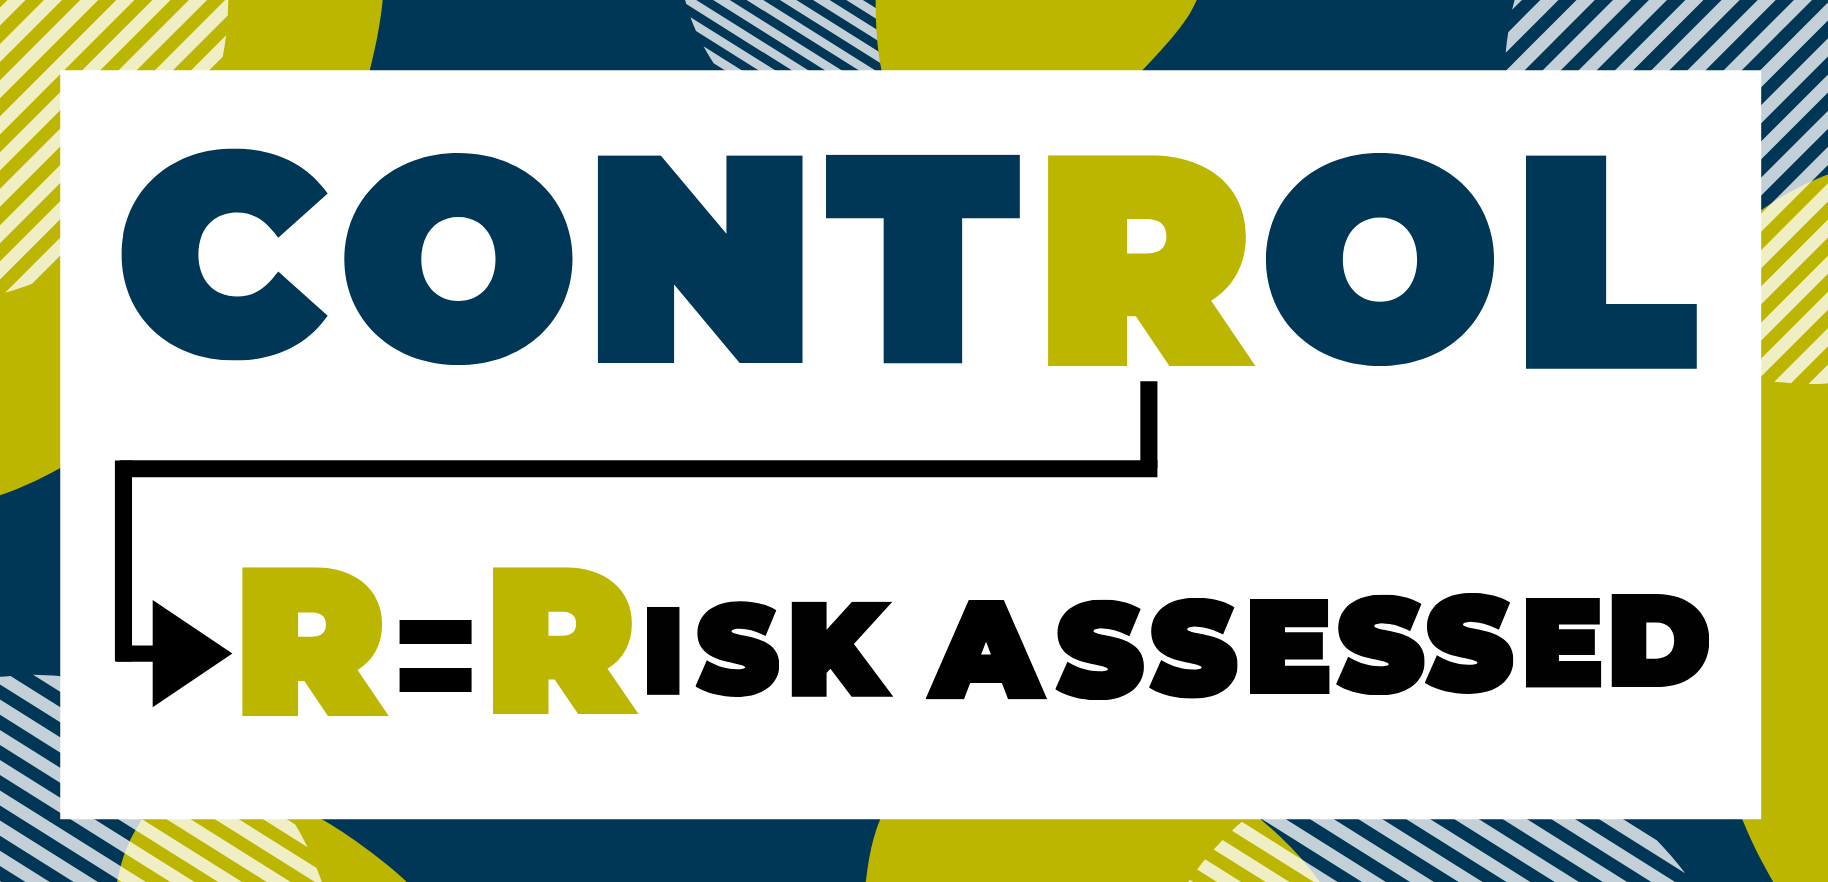 Letter r in control. R = risk assessed.